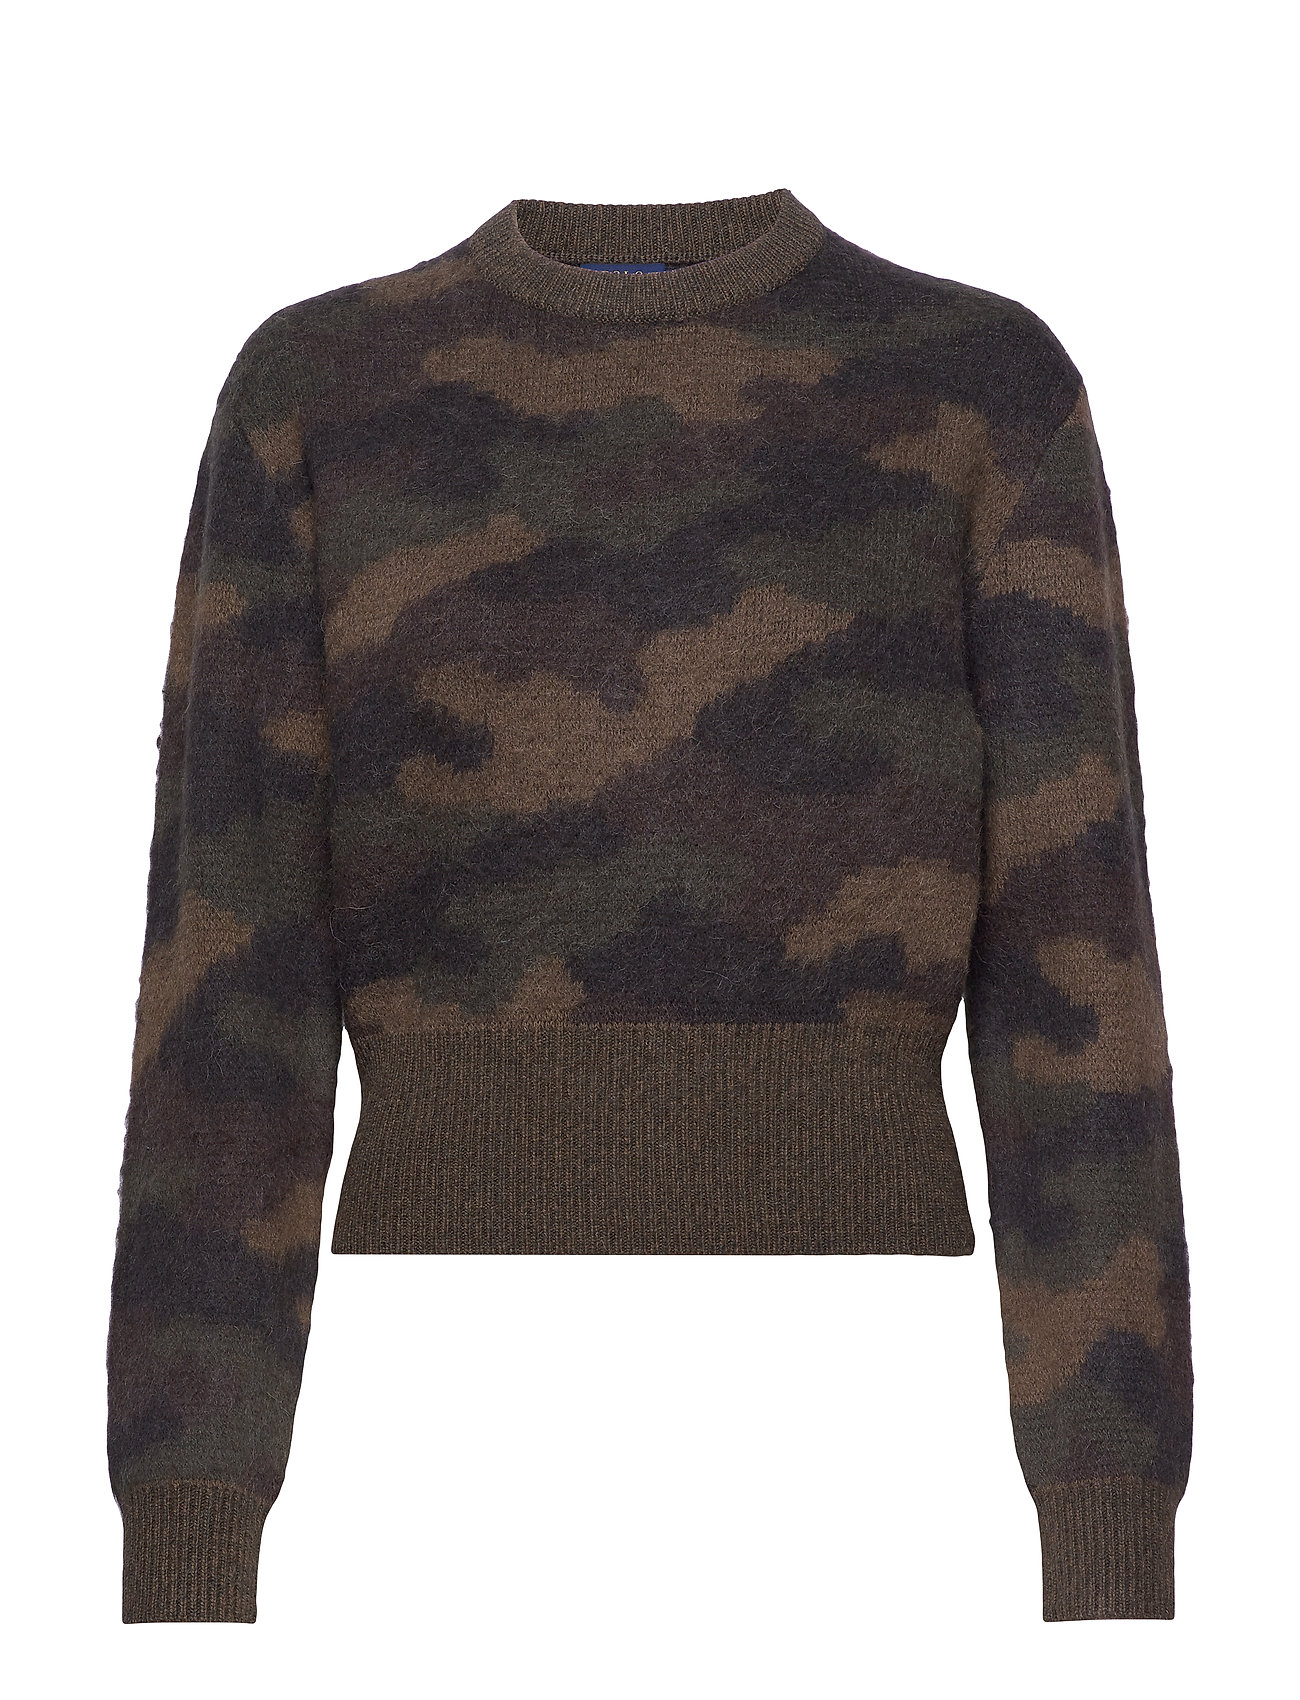 Polo Ralph Lauren Camo-Print Wool Sweater - CAMO